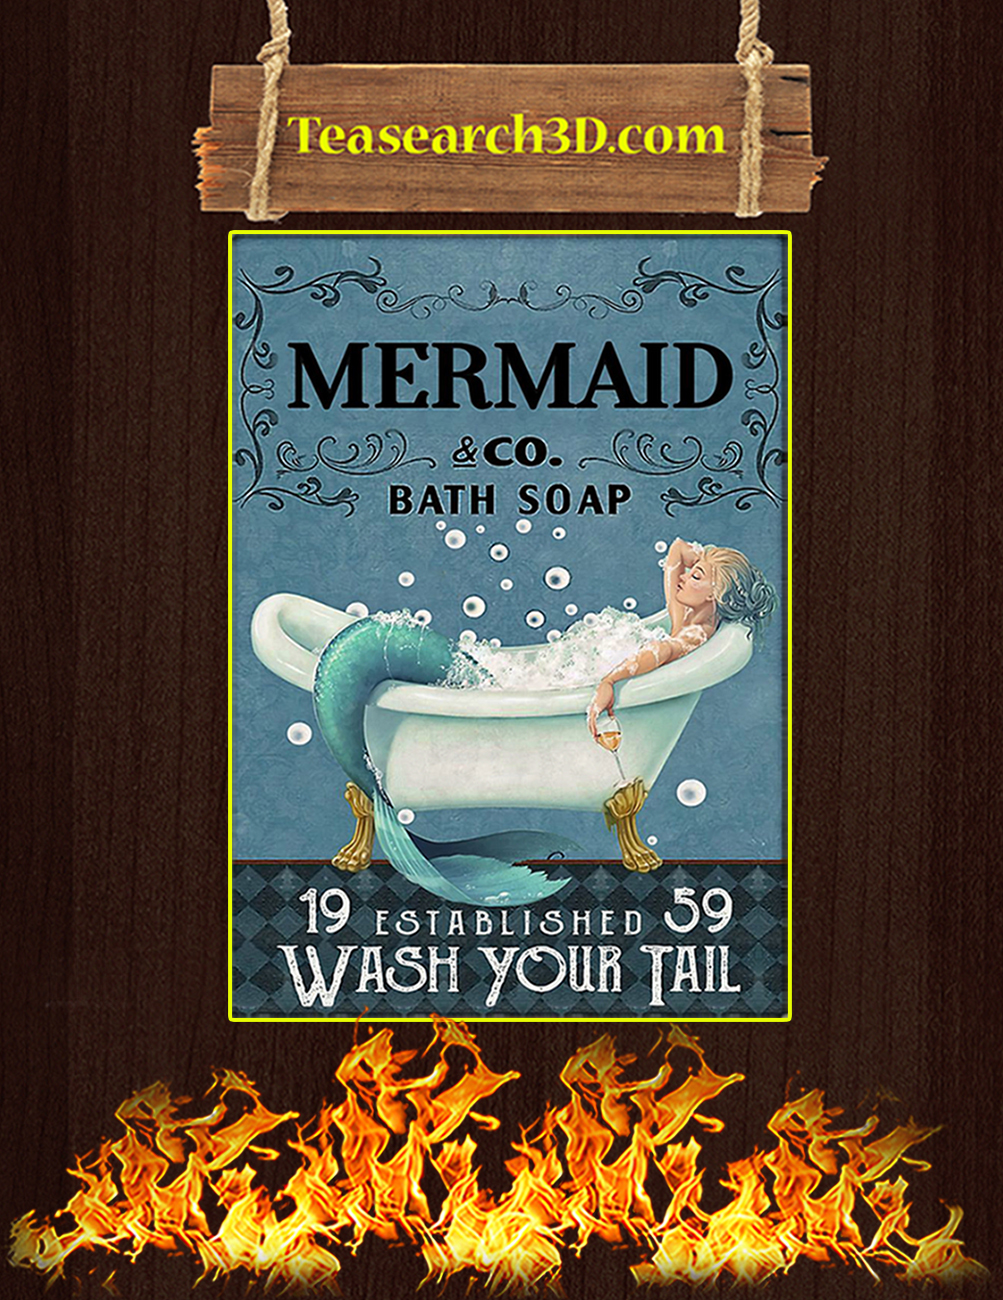 Mermaid co bath soap wash your tail poster